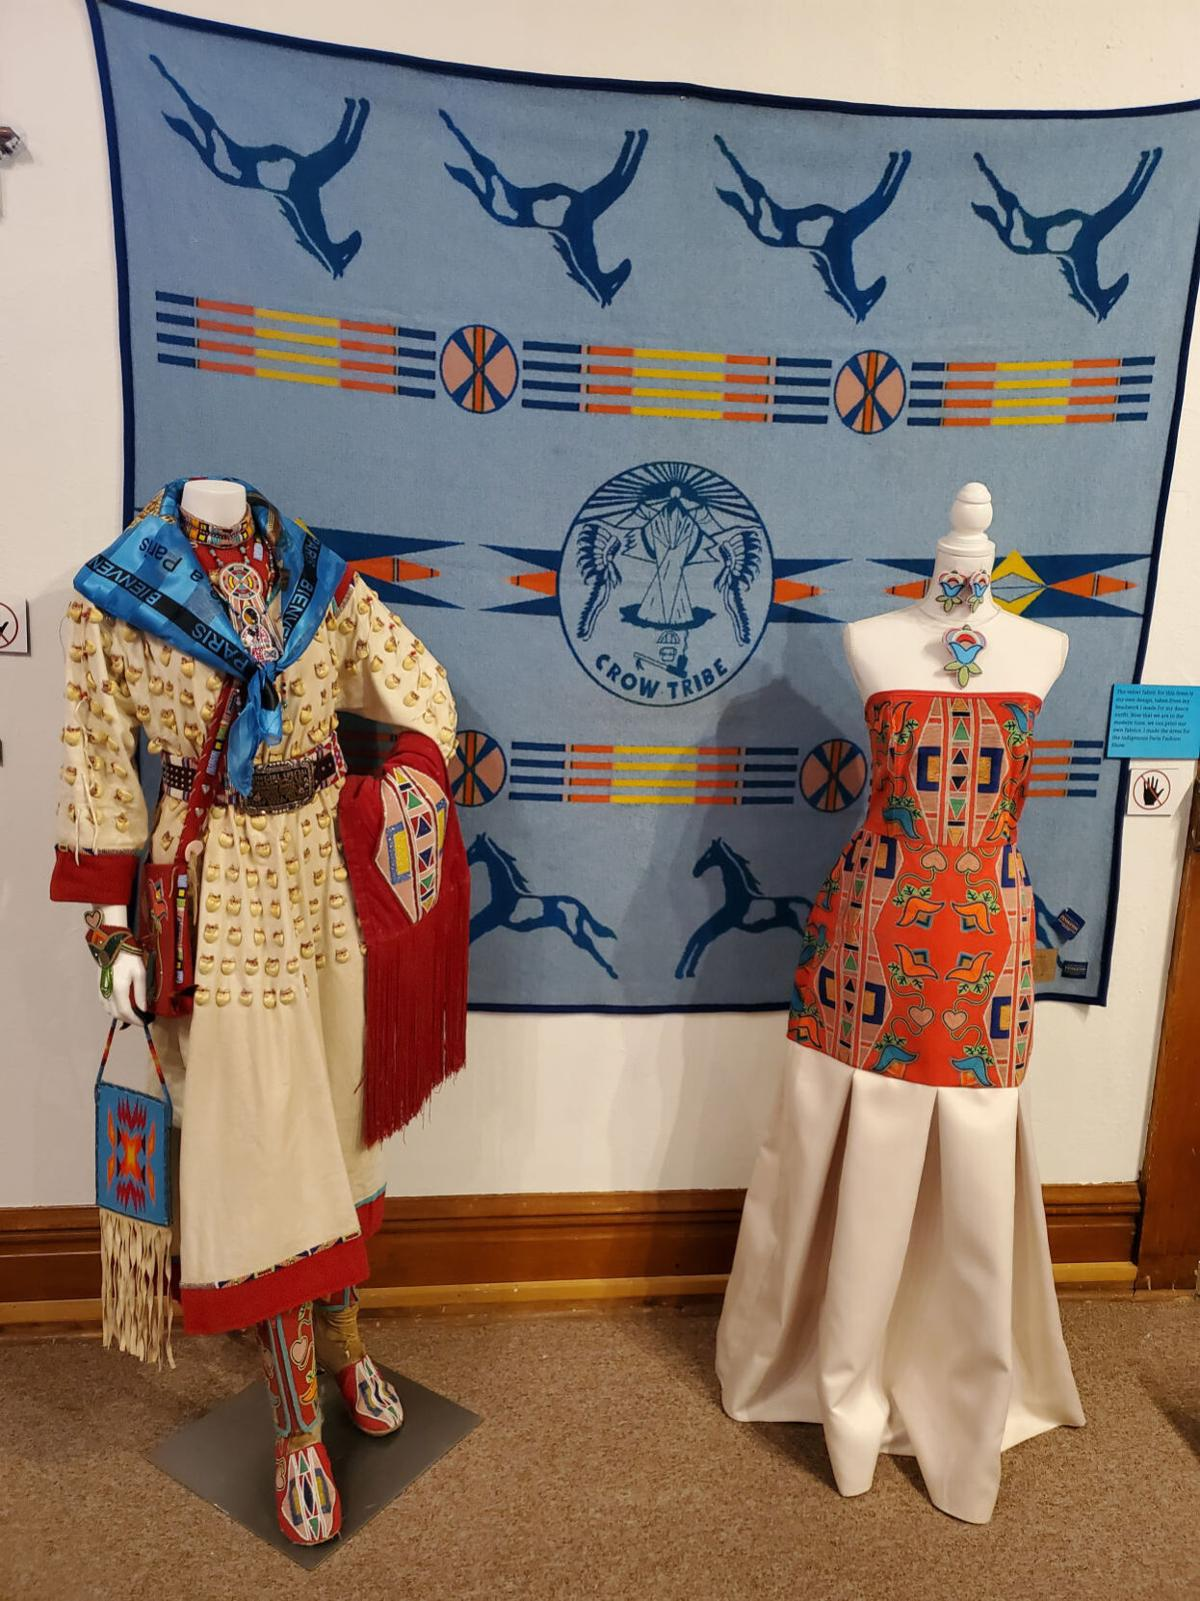 'Where Culture Meets Fashion' at Western Heritage Center